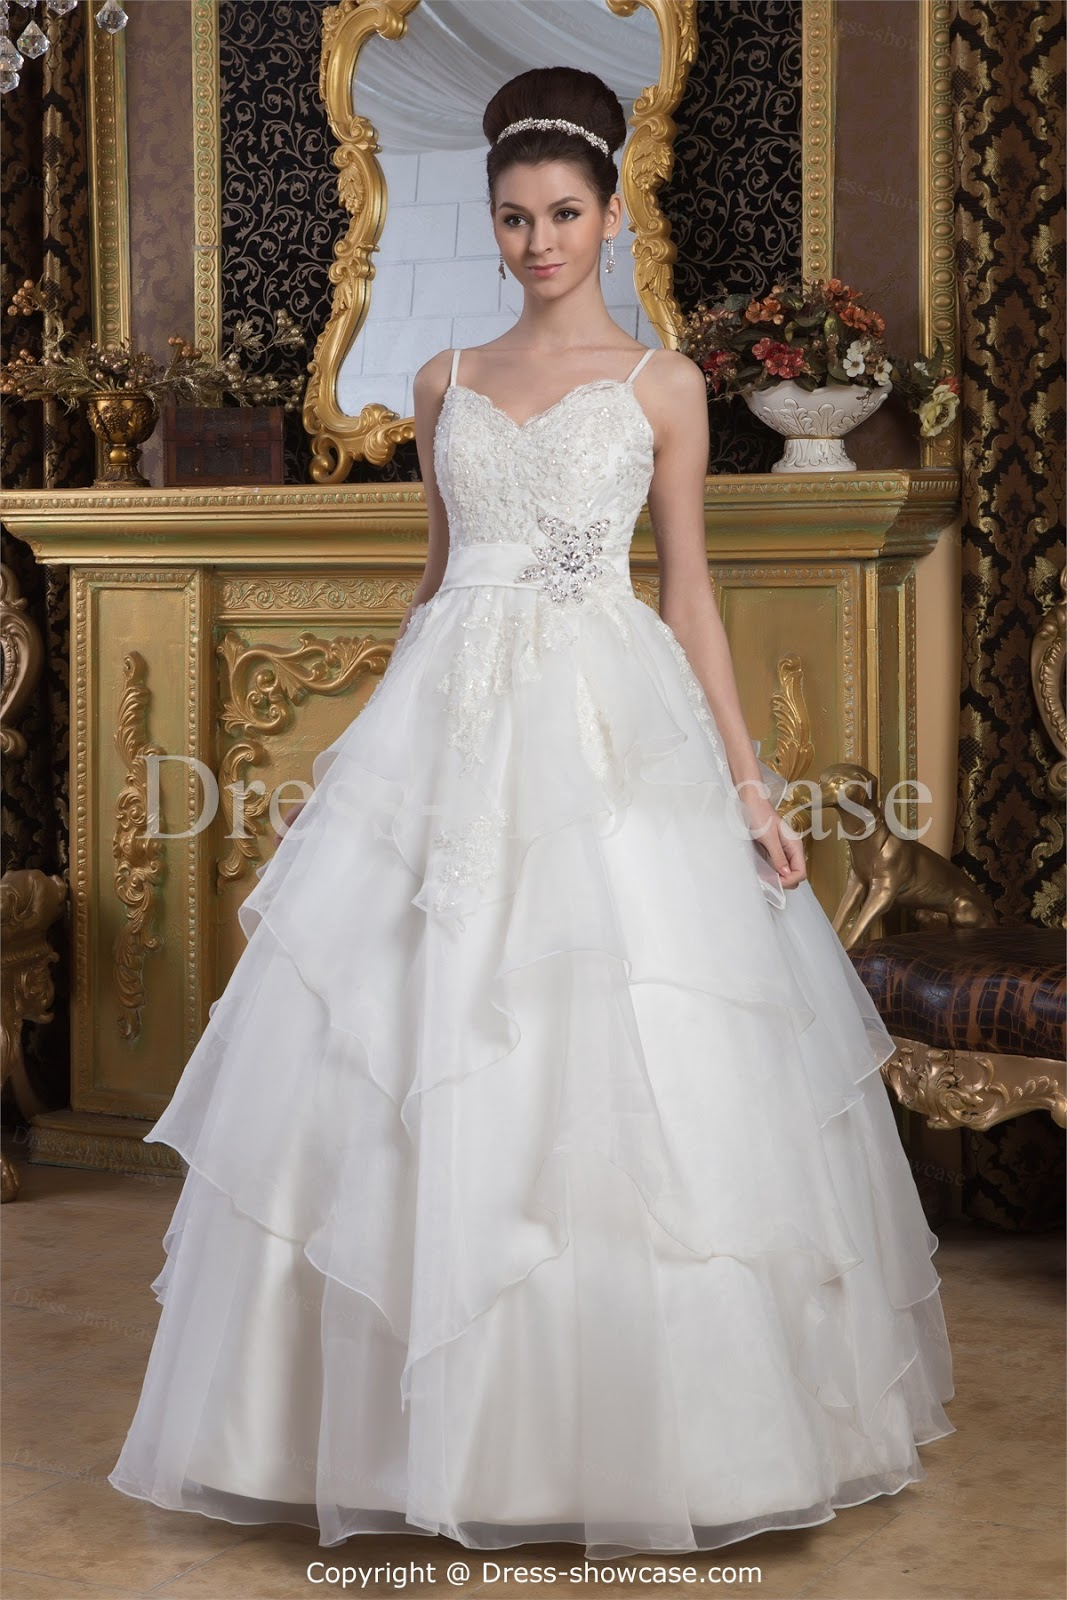 Wedding dresses for petite women wedding dresses for Wedding dresses for womens